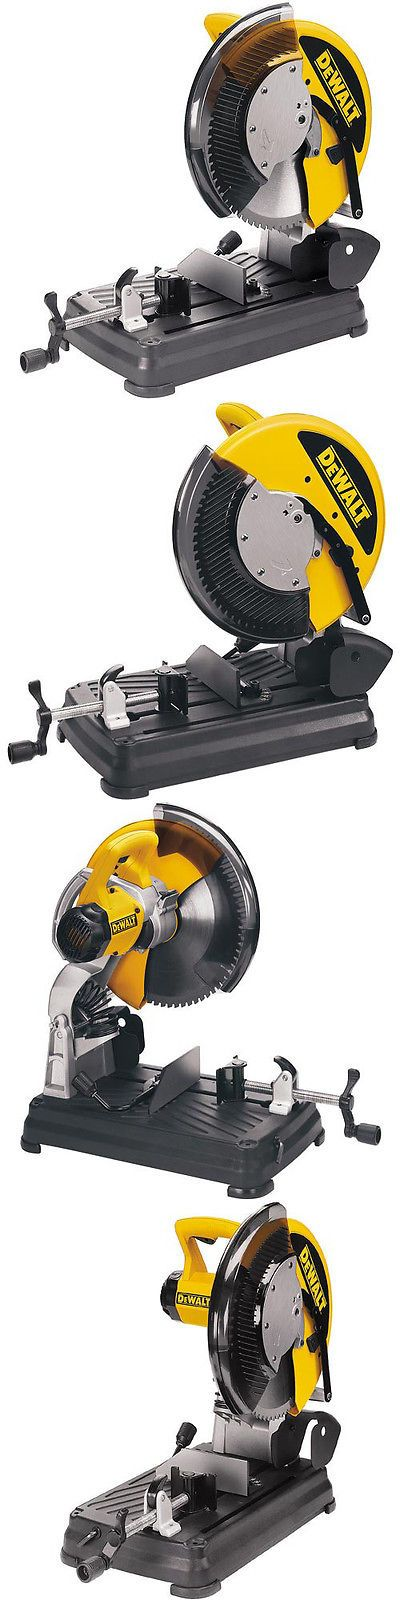 Other Power Saws and Blades 122838: Dewalt 14 Multi-Cutter Saw Dw872 New -> BUY IT NOW ONLY: $449.2 on eBay!